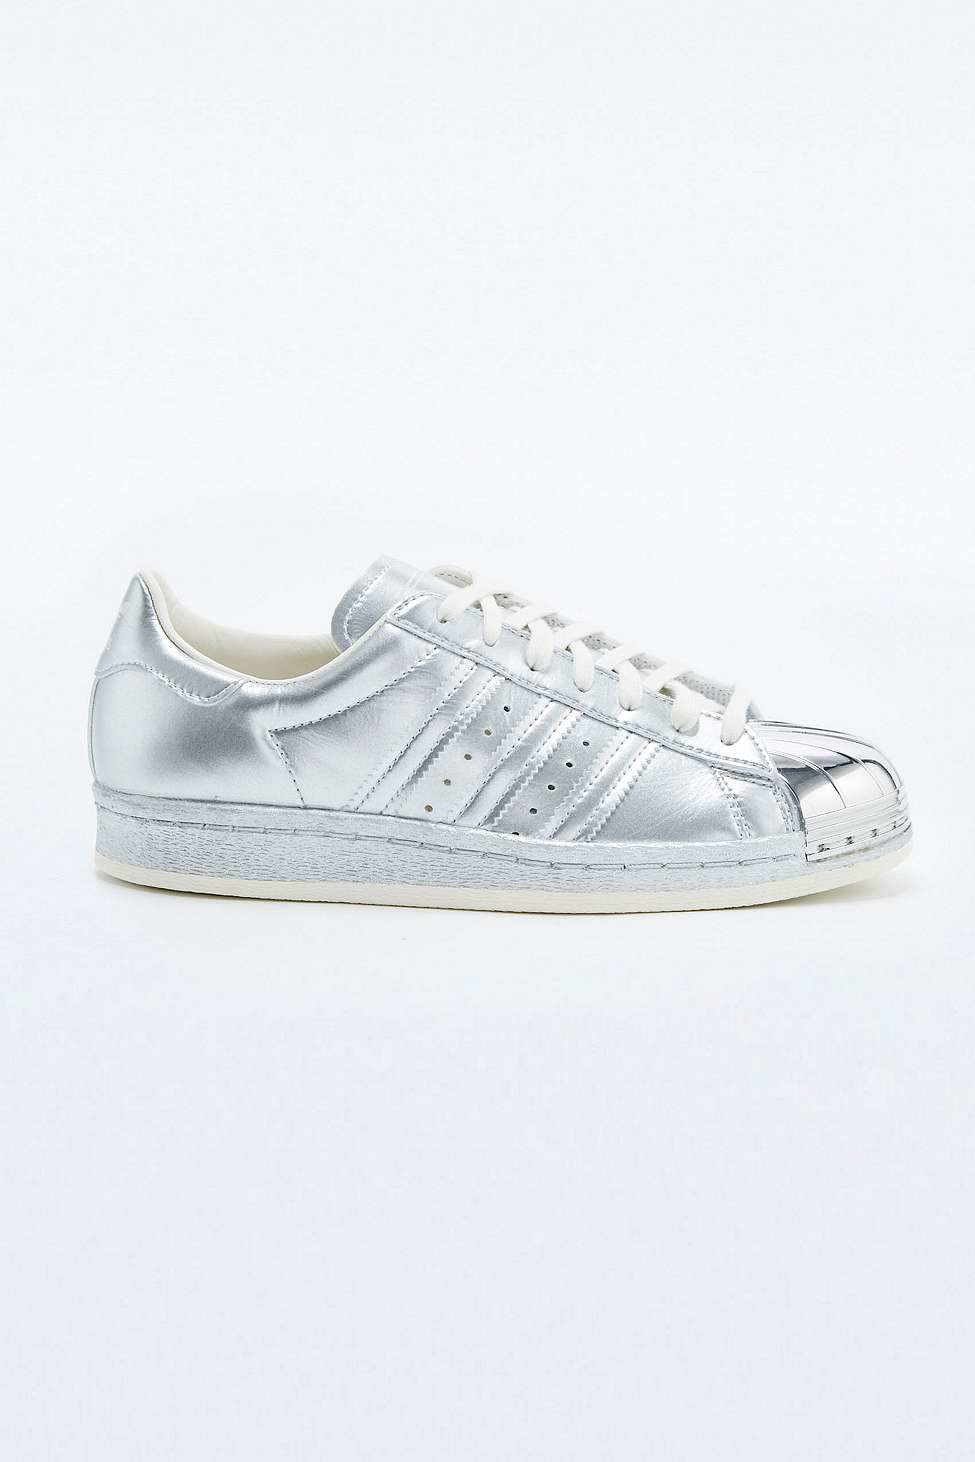 Adidas Originals Superstar 80s Metallic Silver